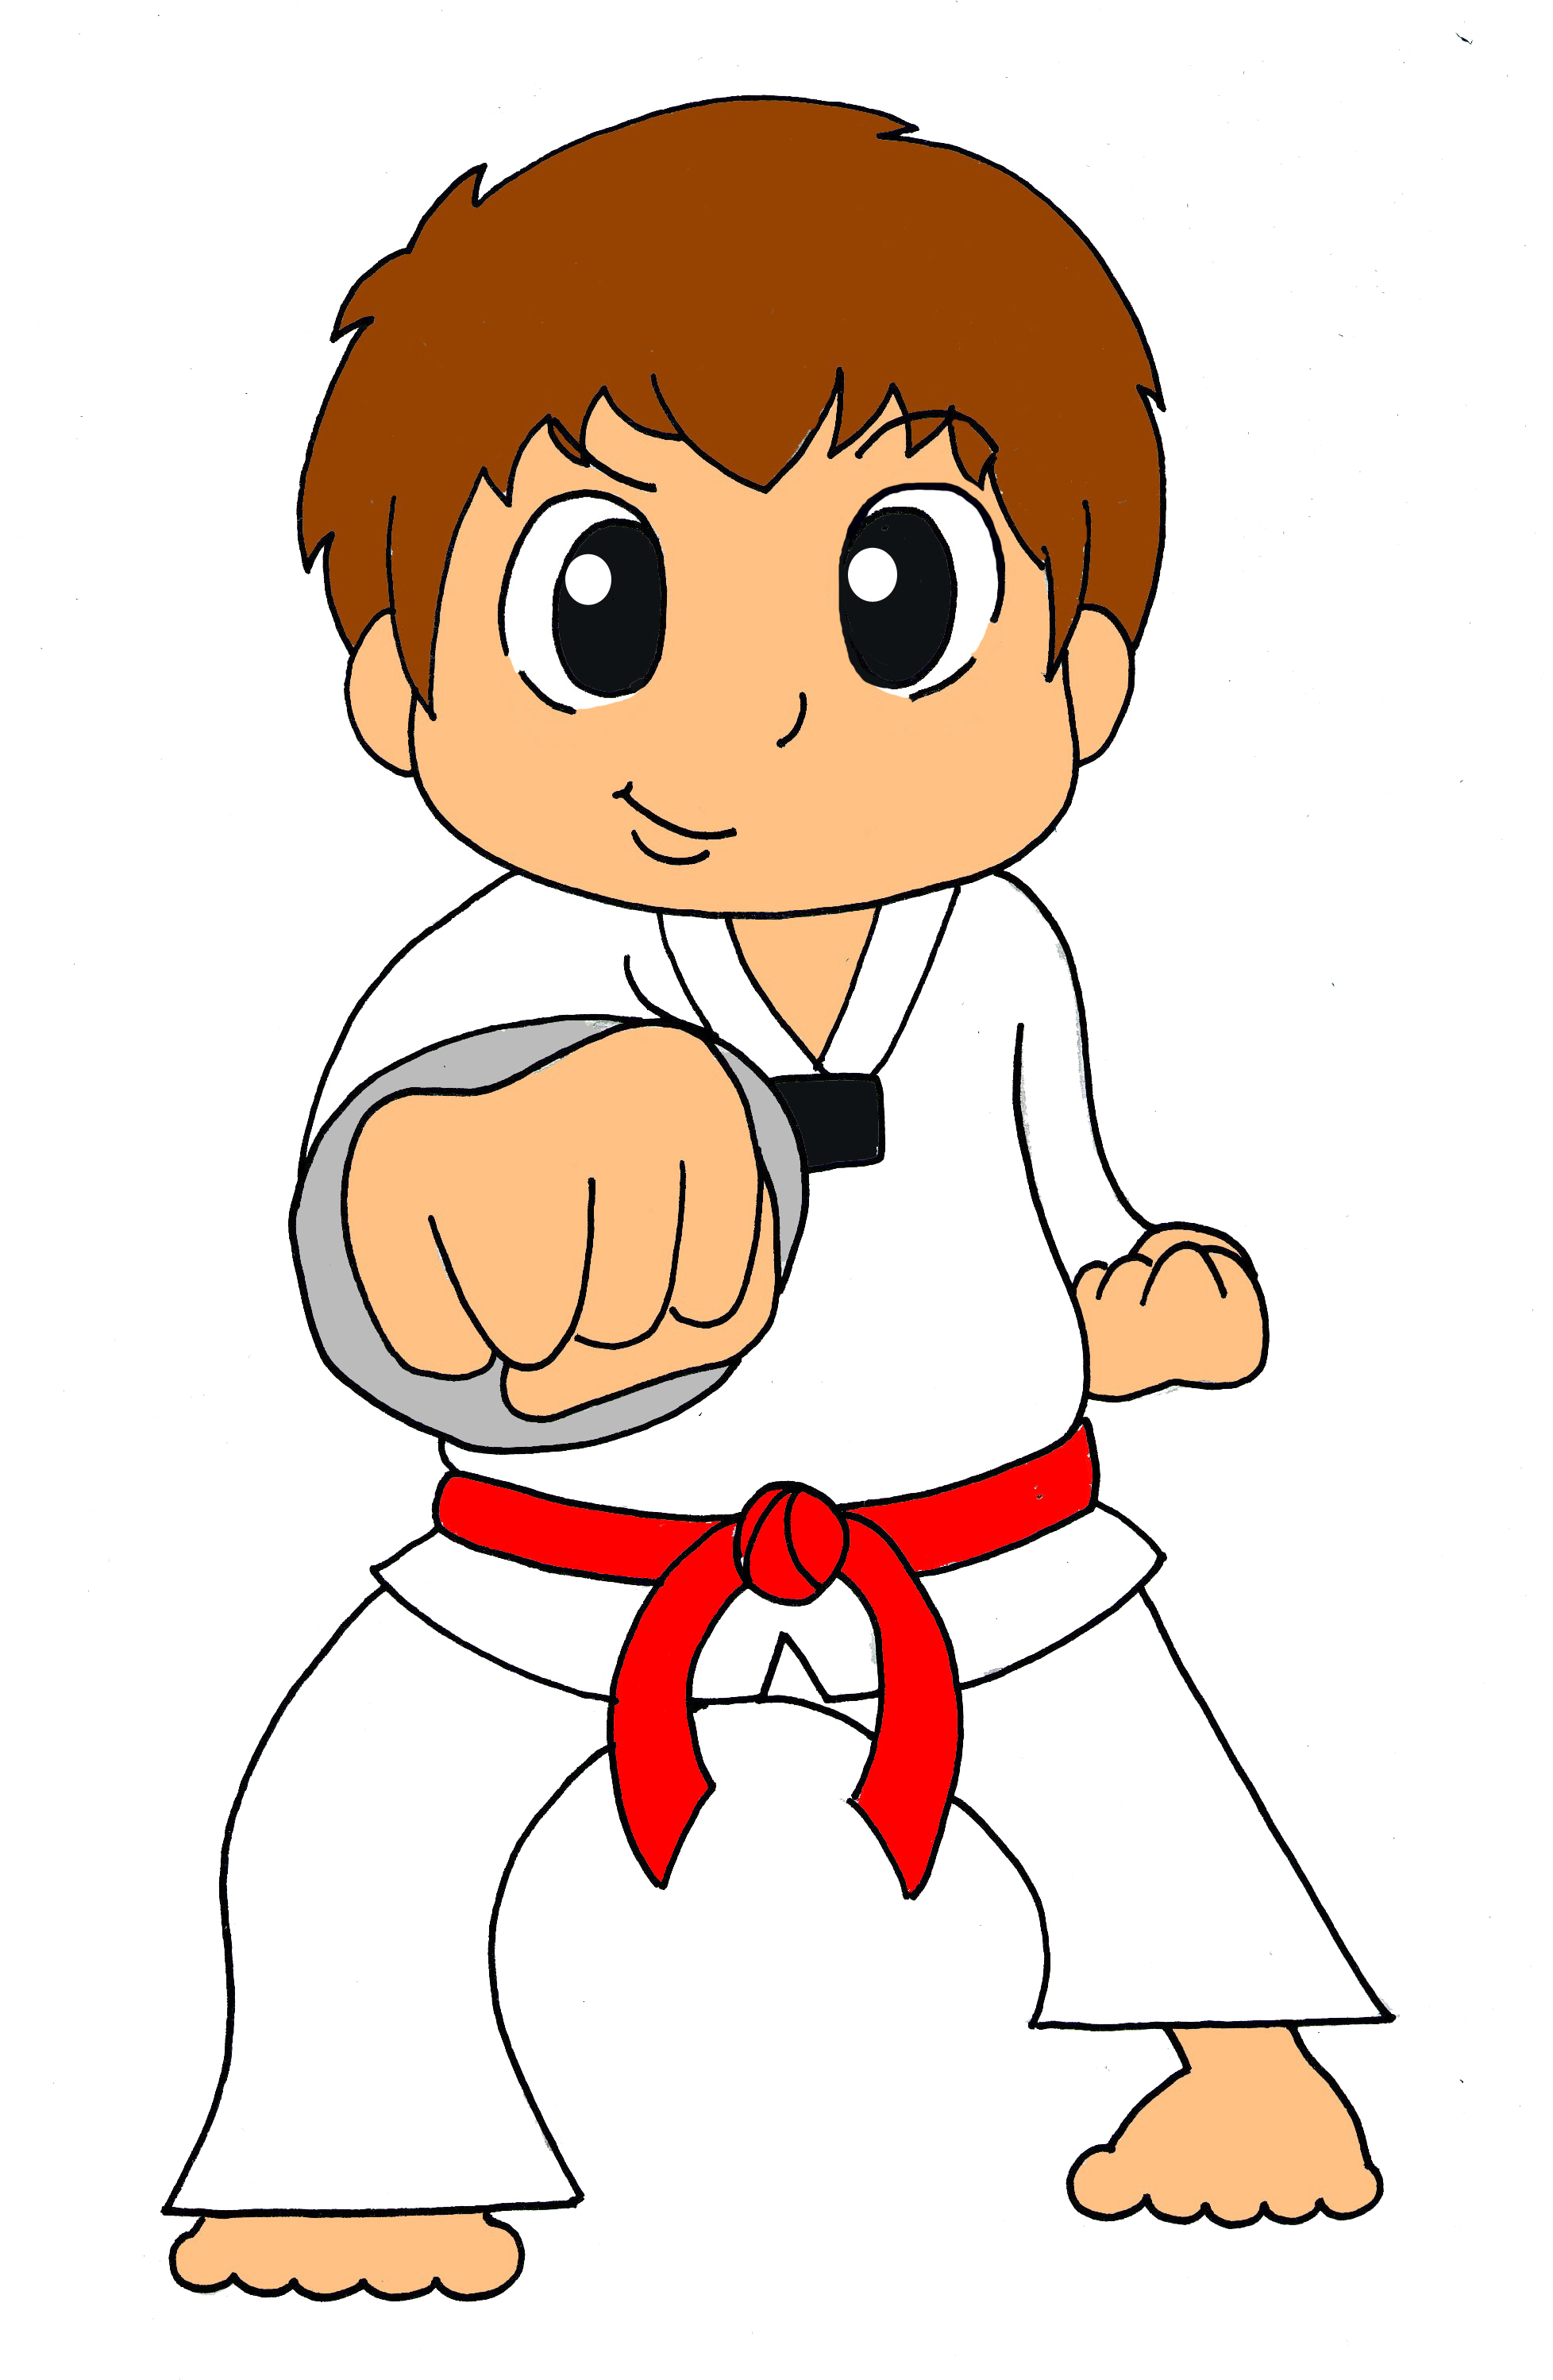 Taekwondo pictures clipart graphic library Free Taekwondo Cliparts, Download Free Clip Art, Free Clip ... graphic library